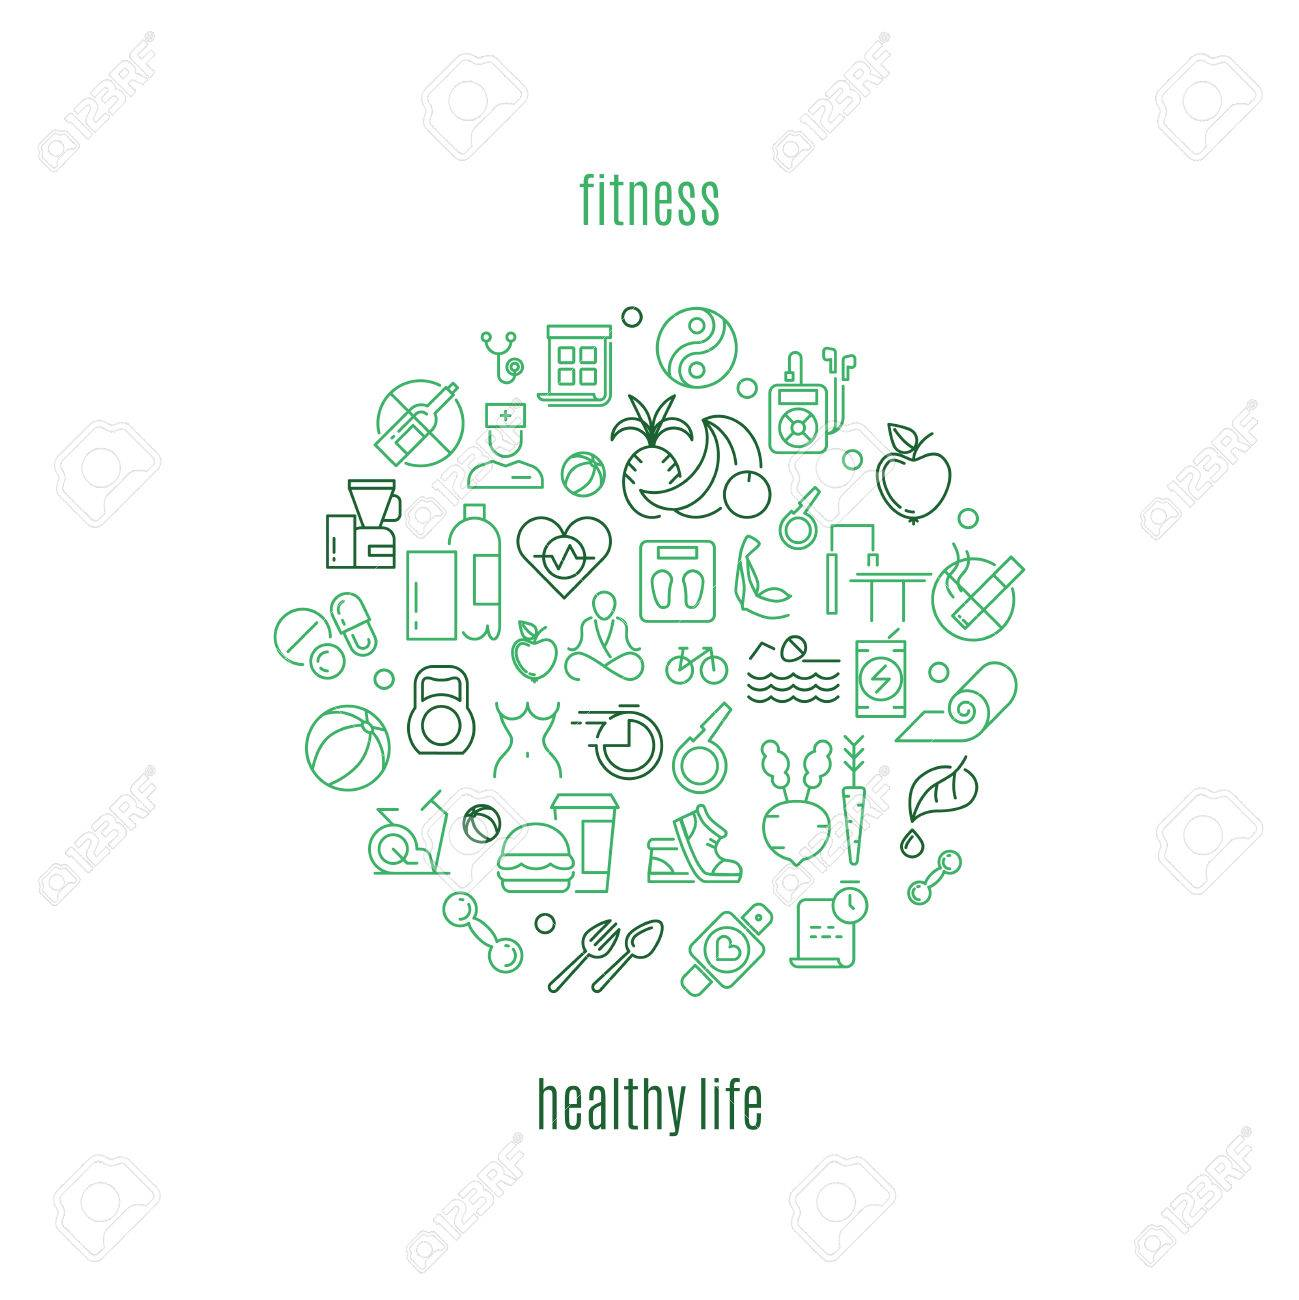 vector template in linear style for gyms and fitness clubs. Healthy life, fitness healthy, fitness gym healthy life illustration - 58813376